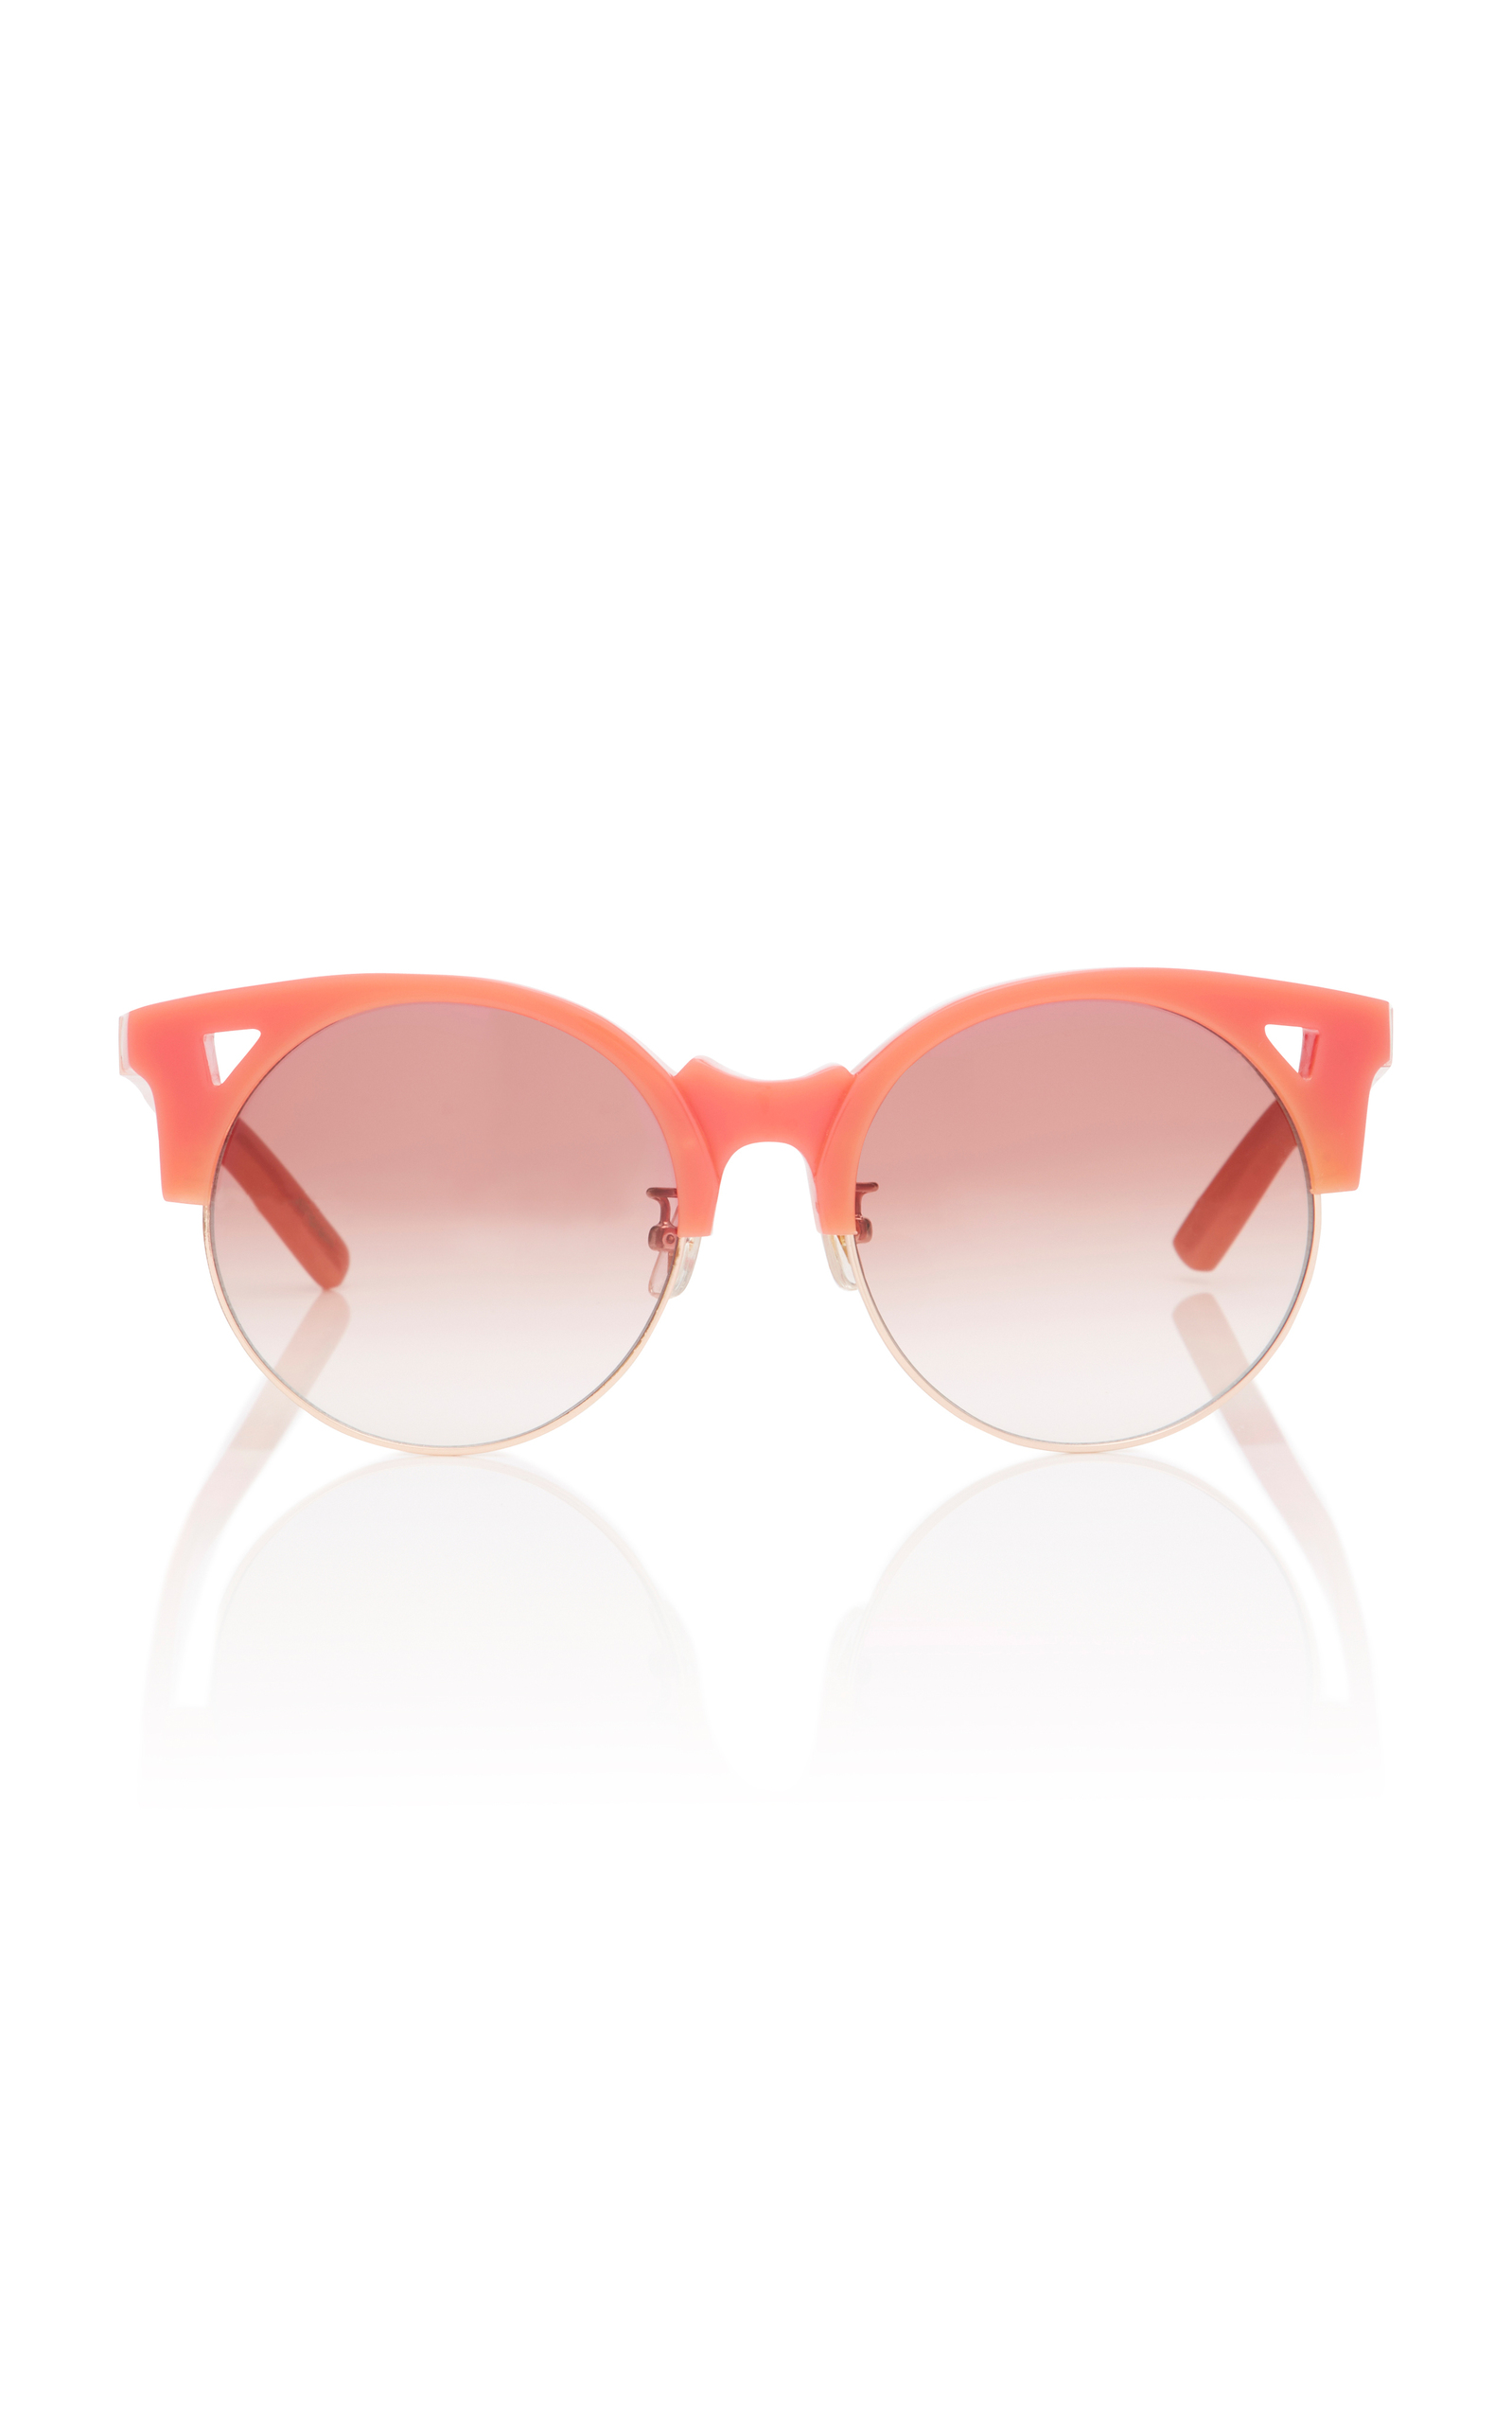 PARED EYEWEAR Up & At Em Semi-Rimless Round Sunglasses, Coral in Red